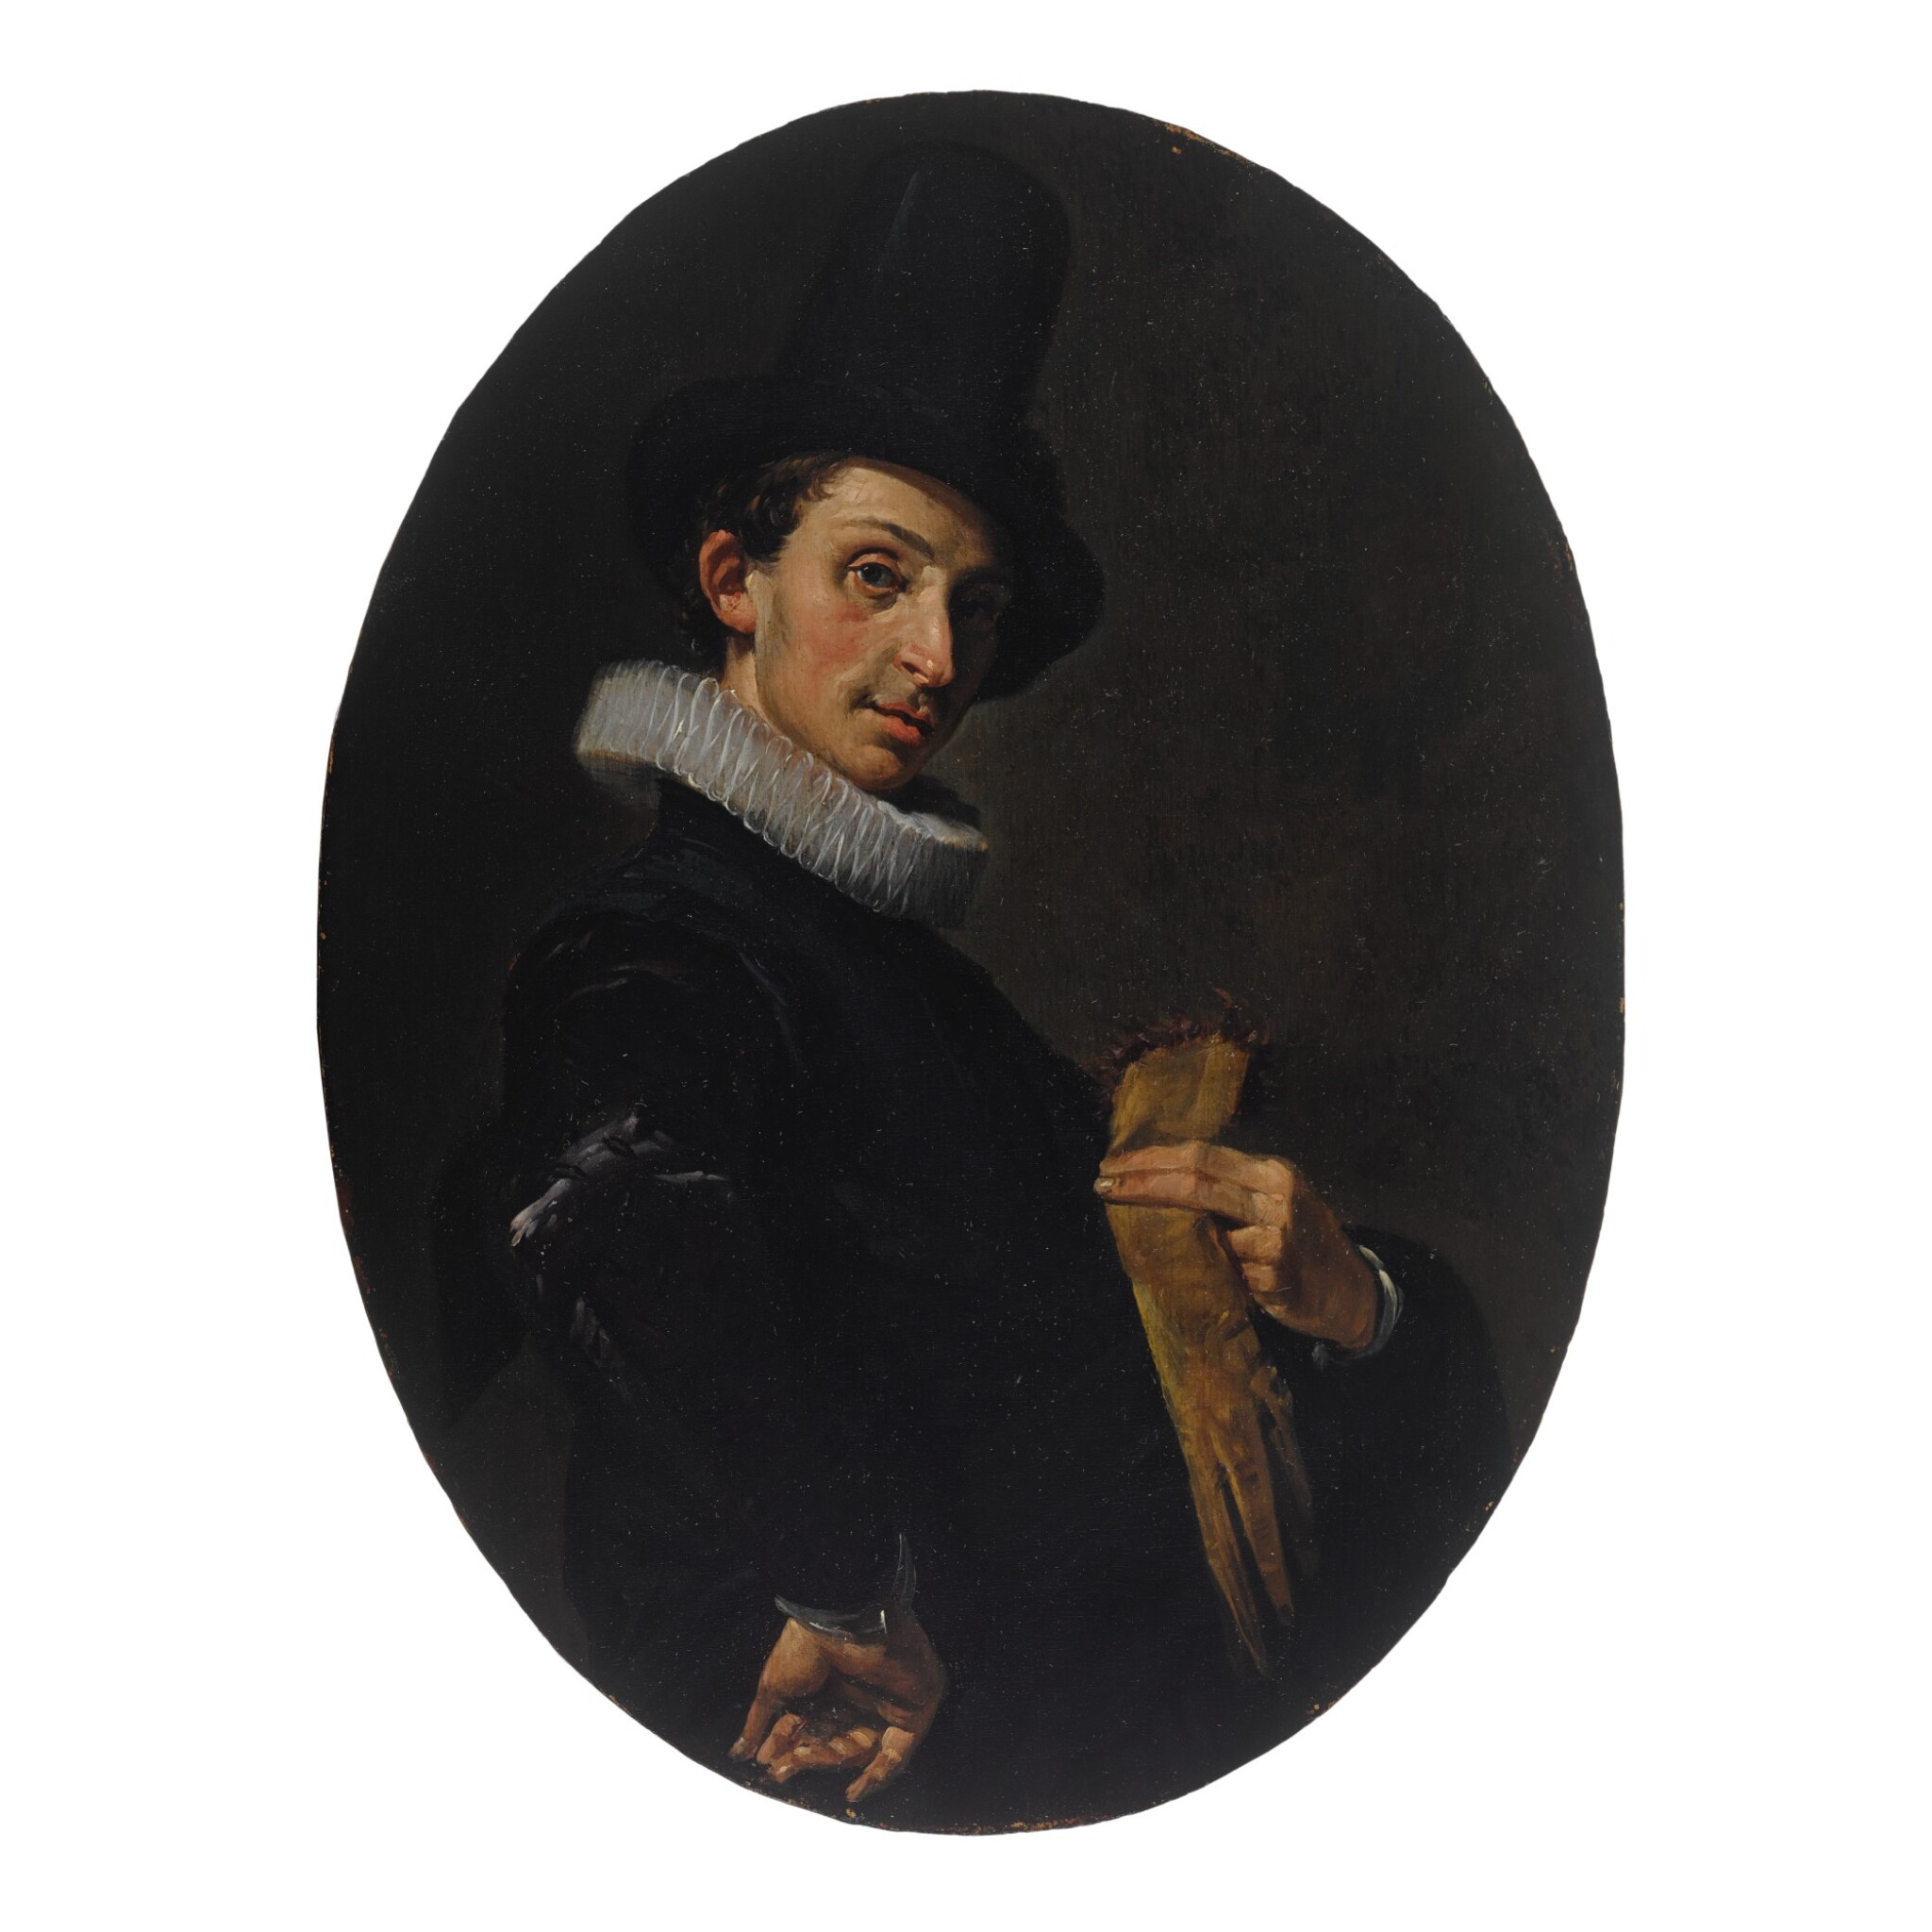 Portrait of a young man holding his gloves and wearing a tall hat, his arm akimbo